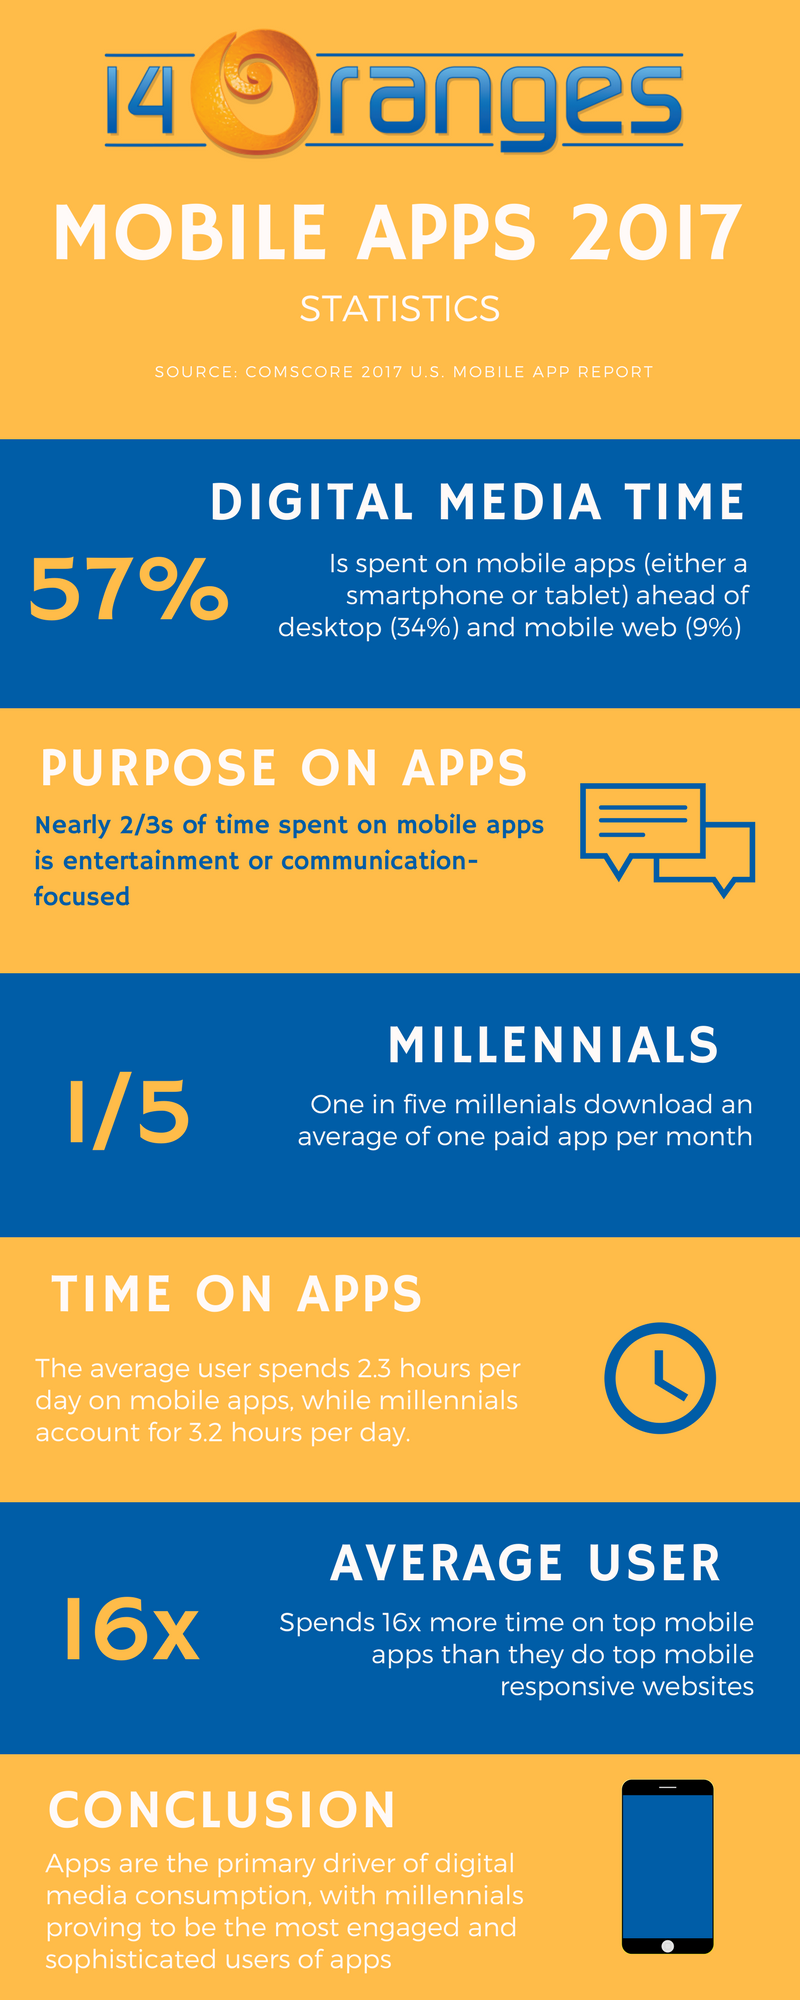 Mobile-App-stats-infographic-2